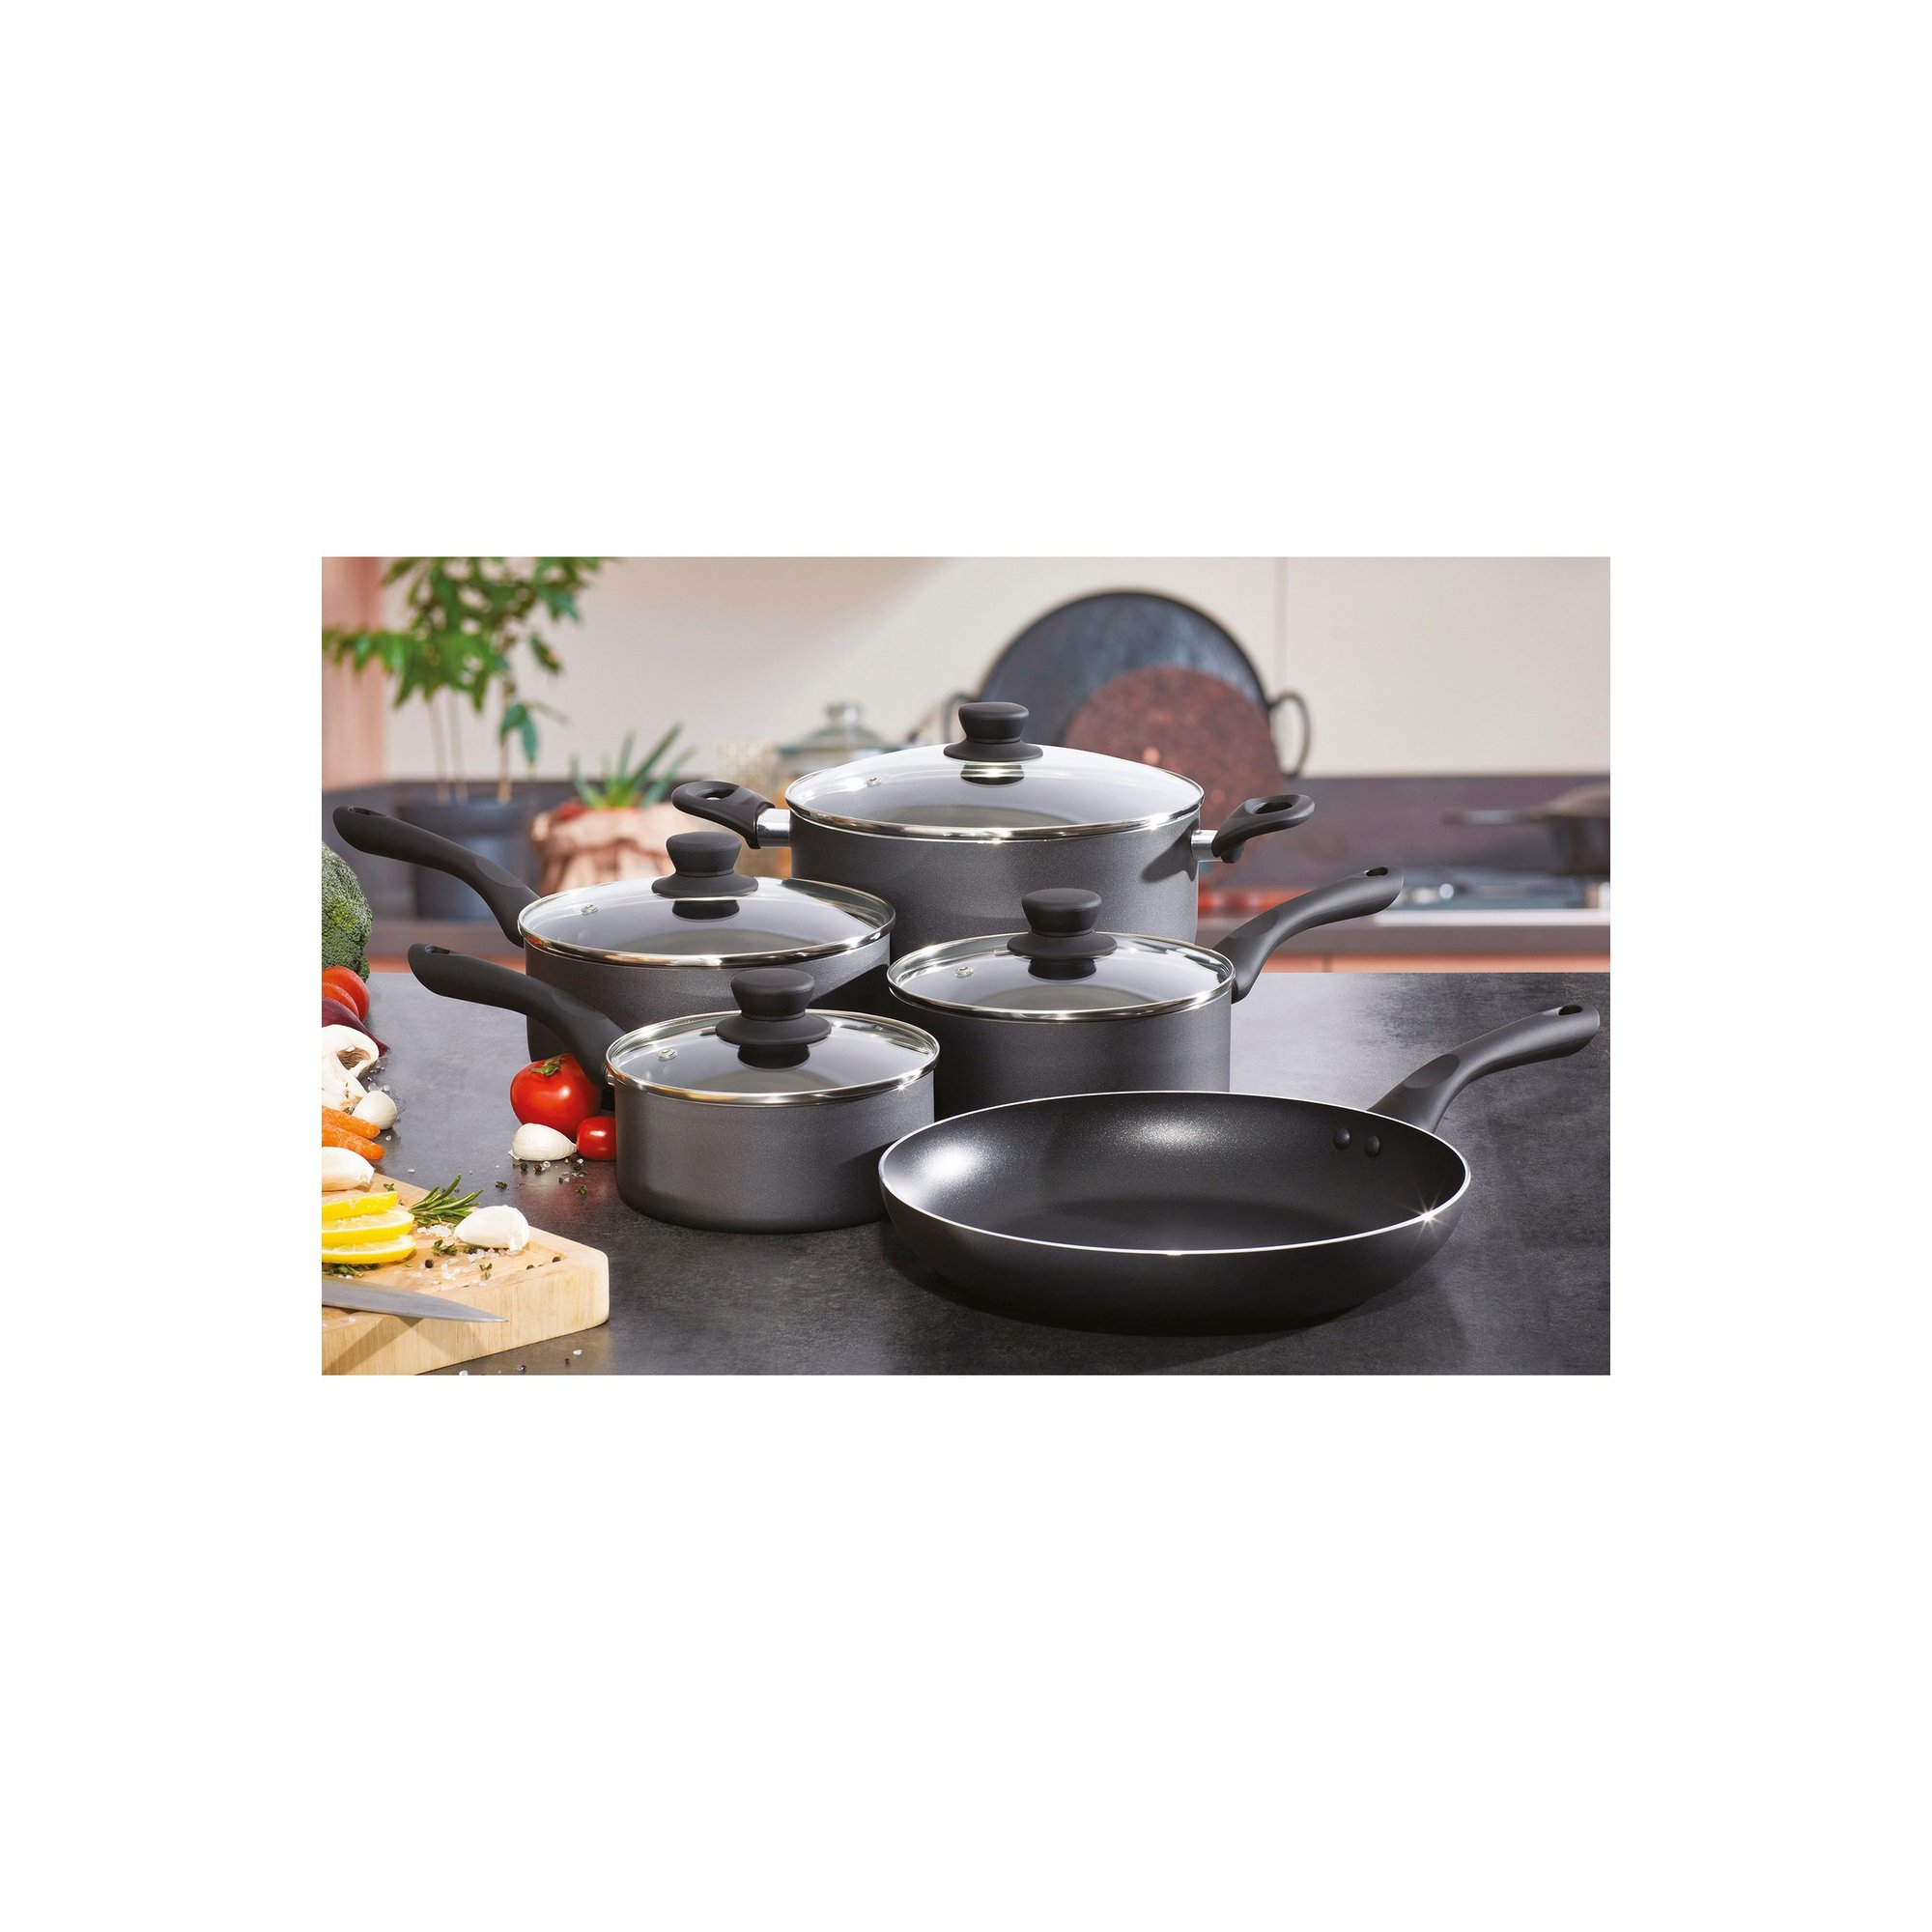 Image of 5 Piece Pro-Chef Pressed Aluminium Pan Set